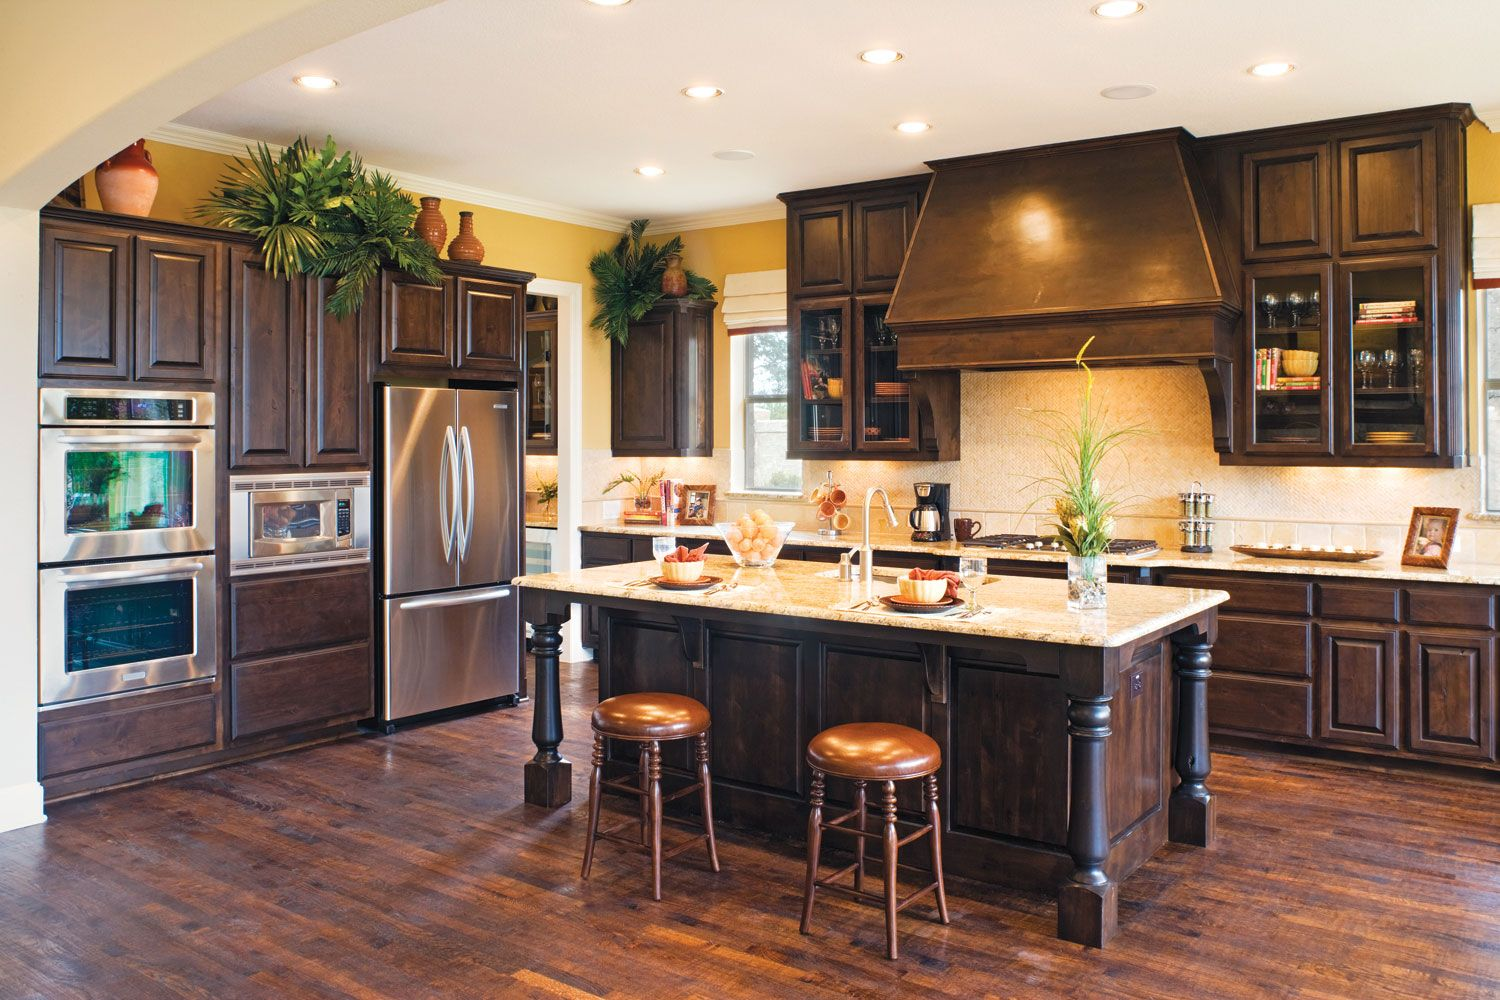 Kitchen Cabinets Knotty Alder dark alder kitchen cabinets | roselawnlutheran